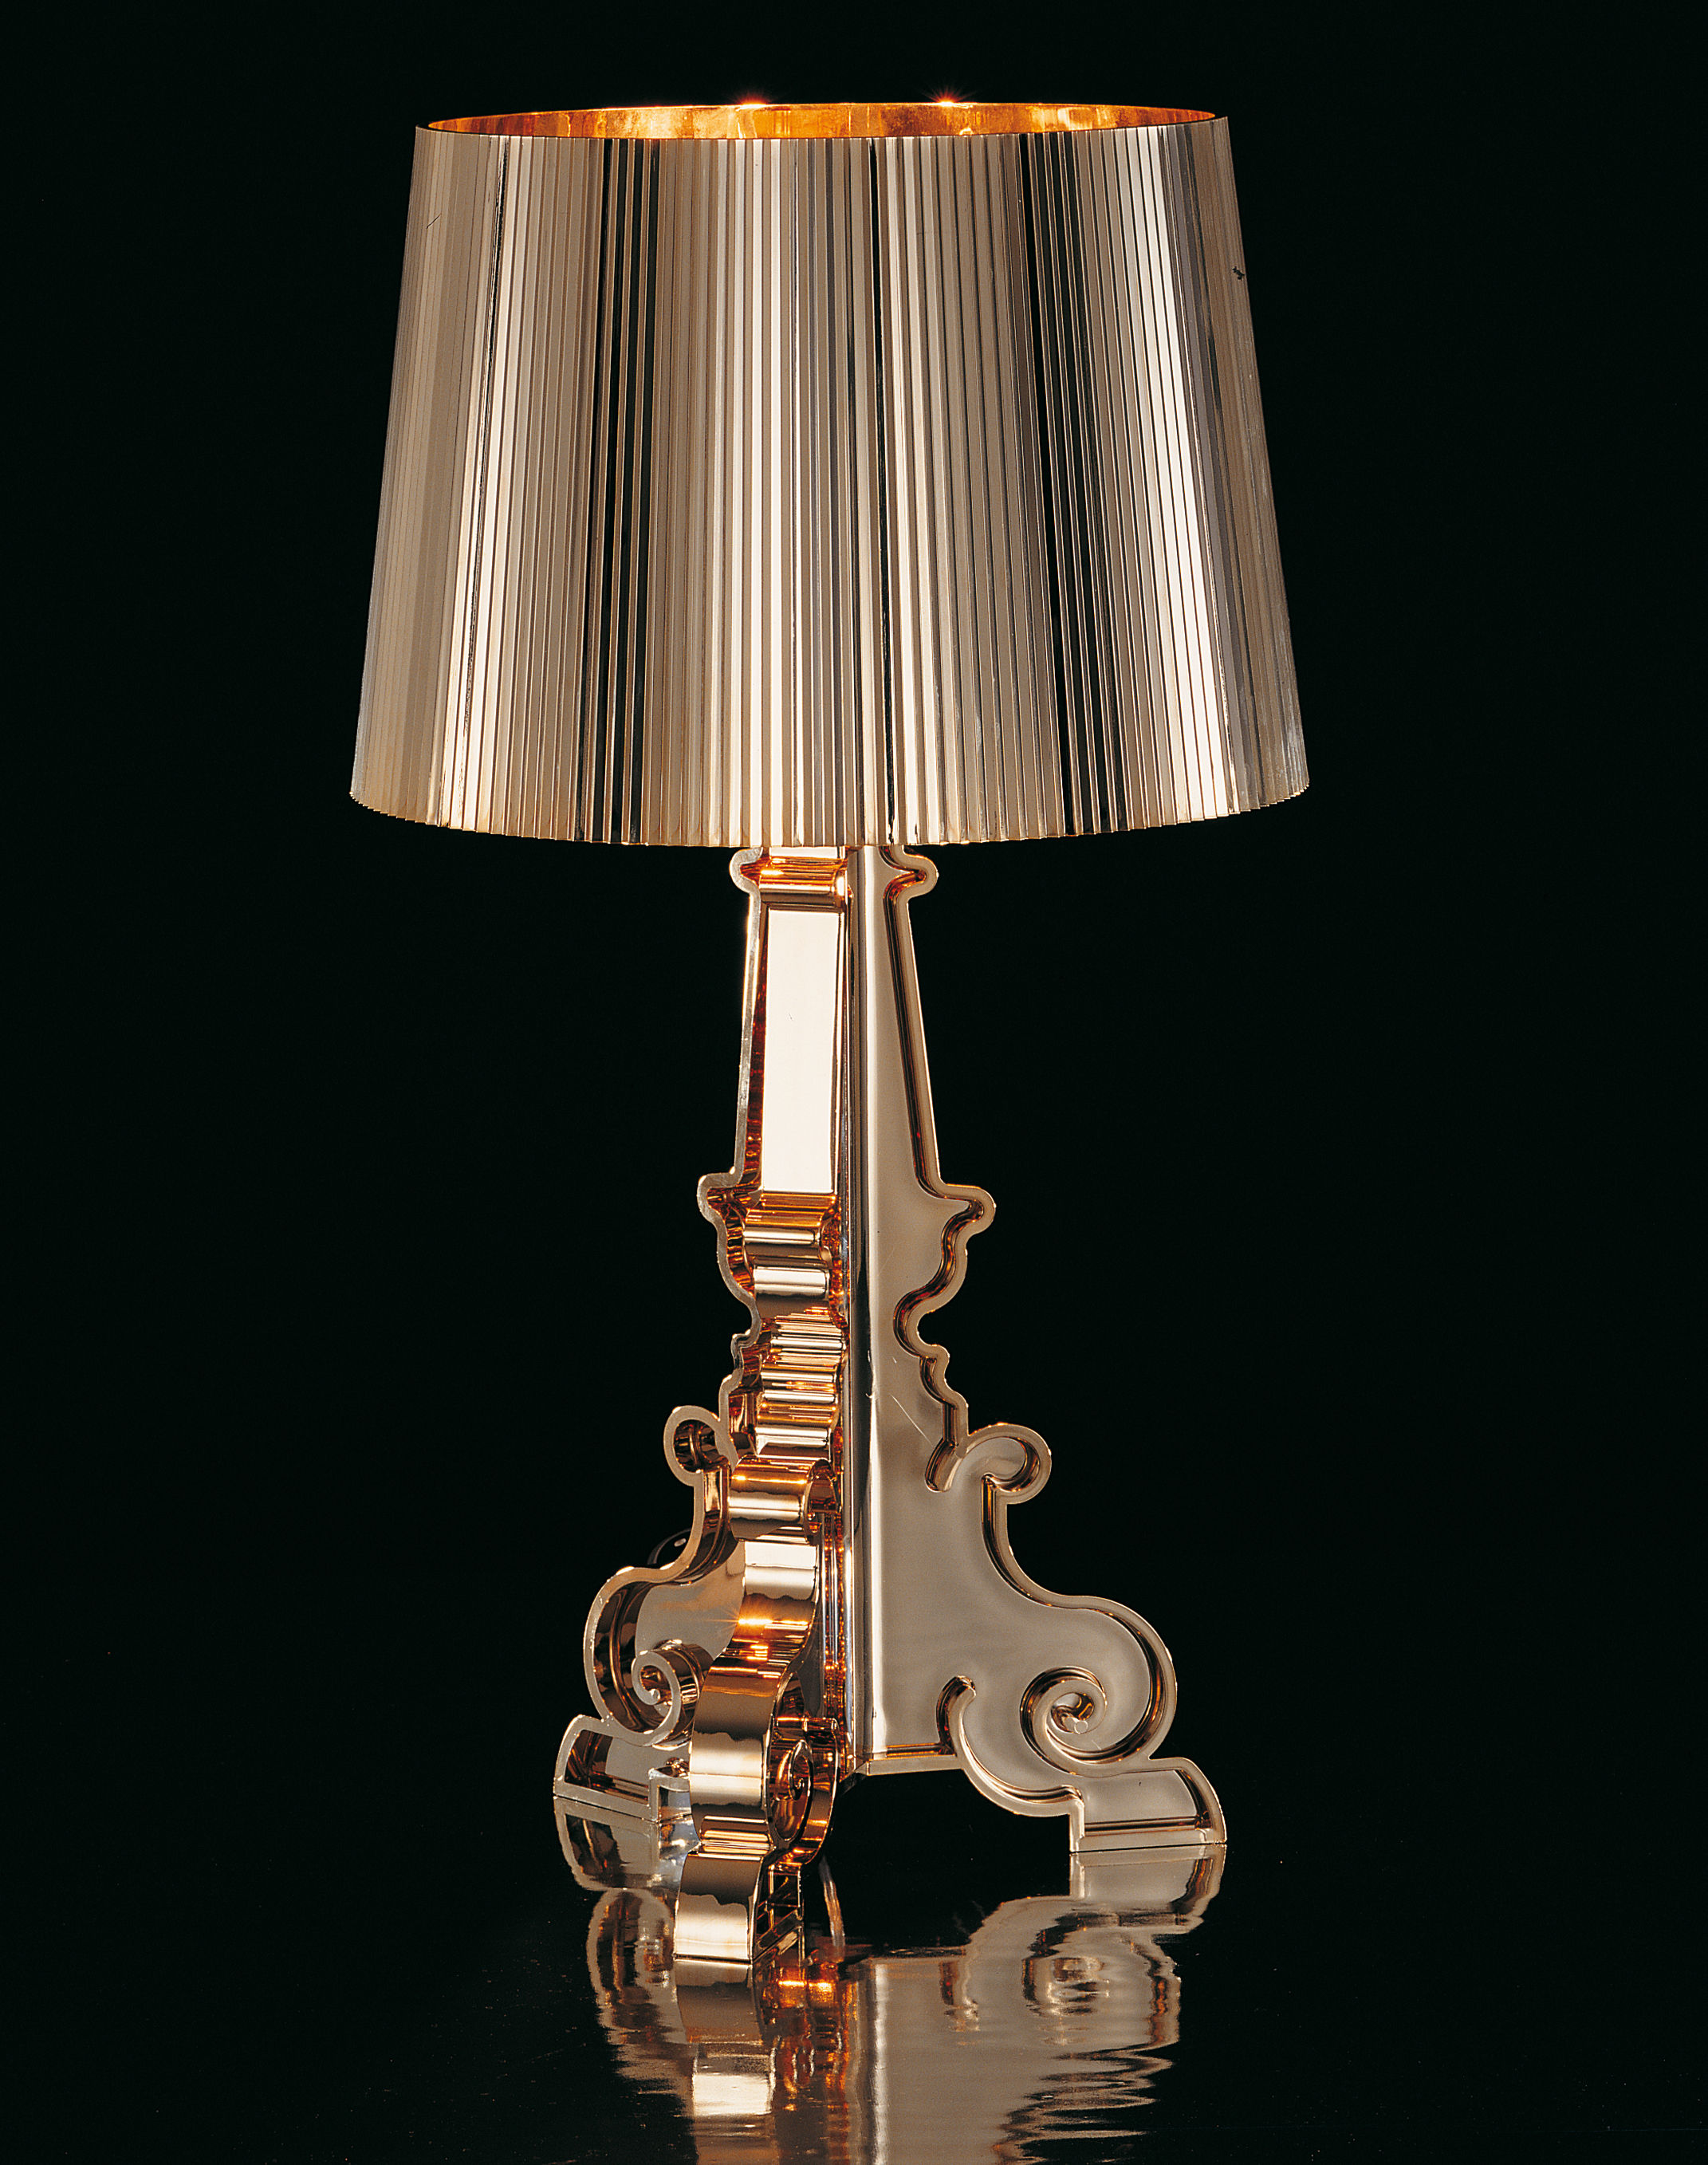 kartell lampadari : Home > Lighting > Table lamps > Bourgie Or Table lamp by Kartell